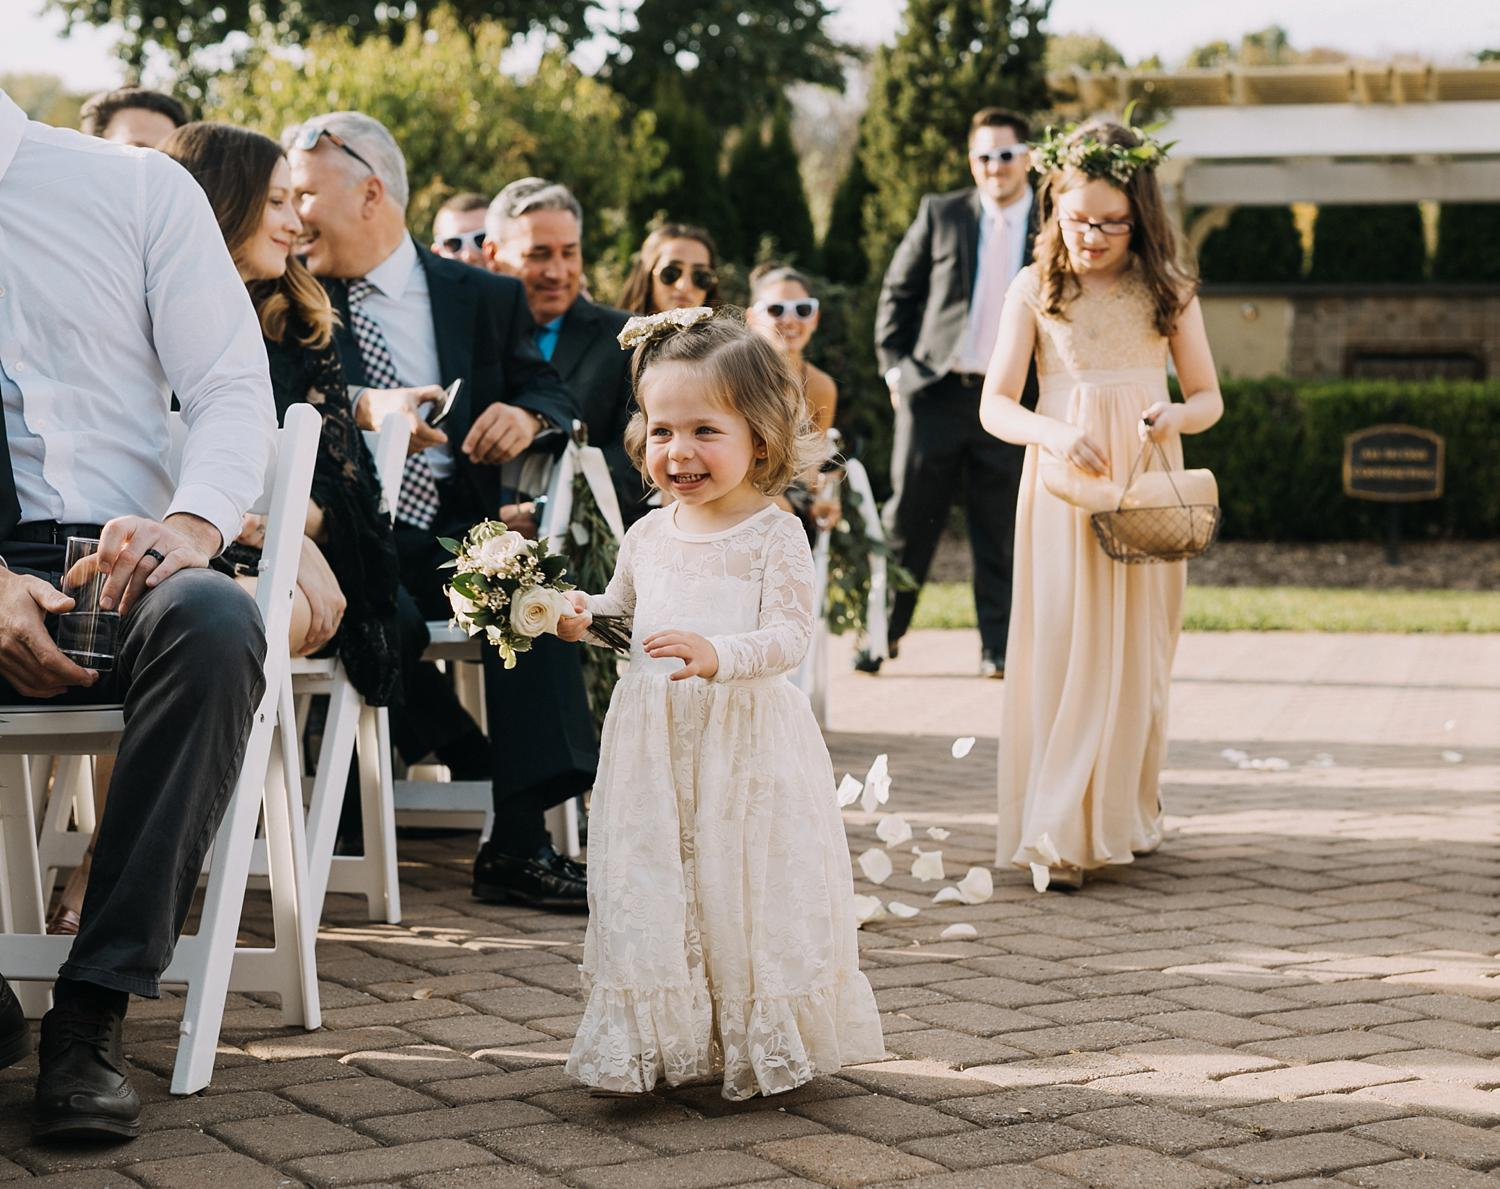 Conservatory Sussex County Fairgrounds Augusta NJ Wedding Photography Steph Massaro Ceremony Flower Girl